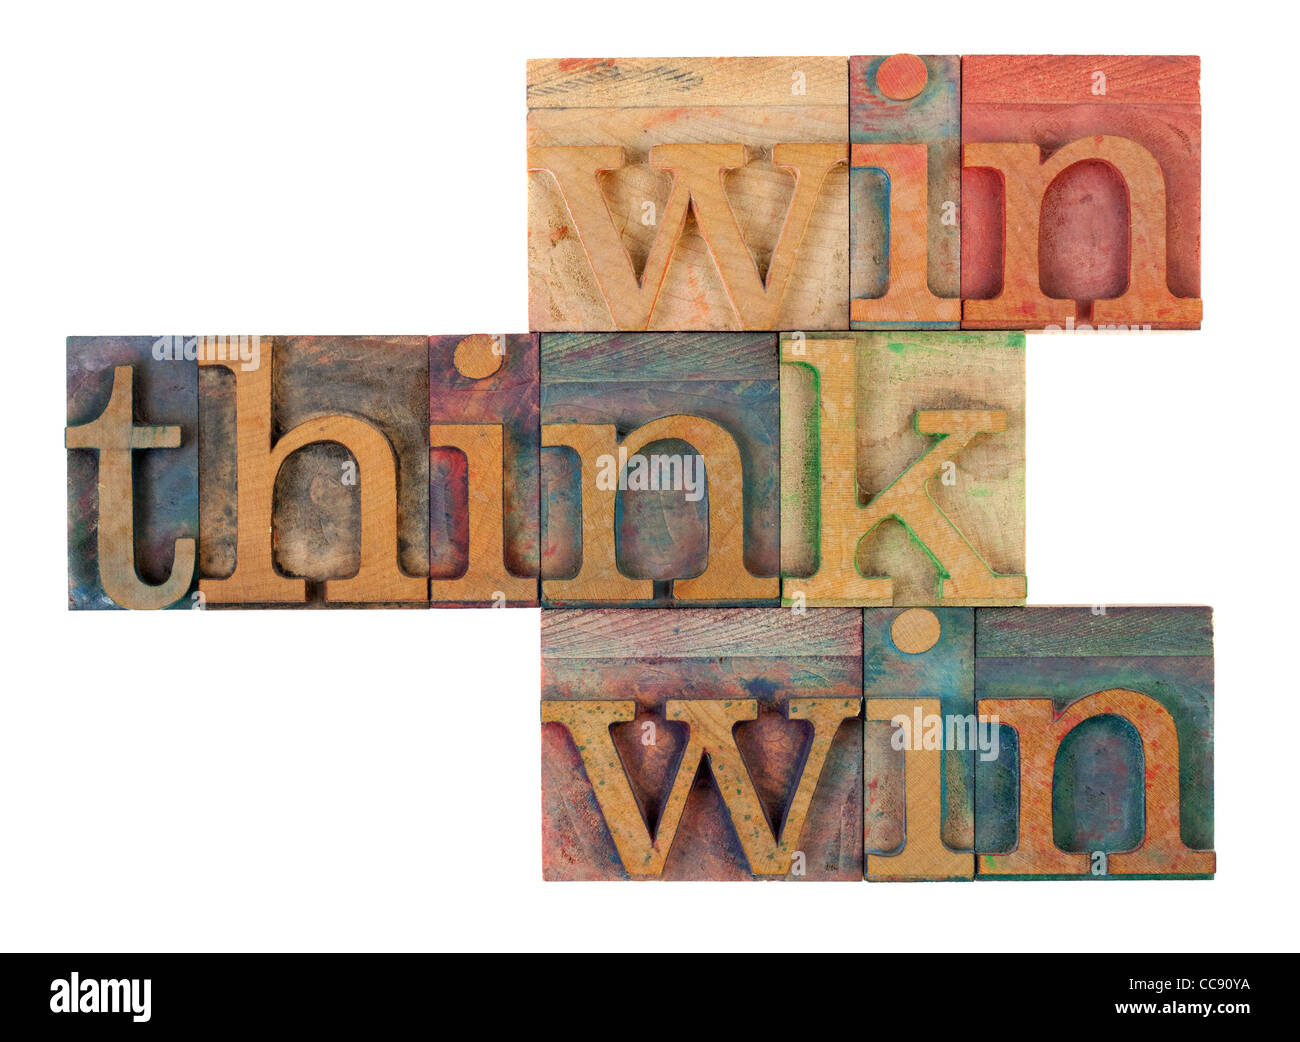 think win win words in vintage wooden letterpress printing blocks, stained by color inks, isolated on white - Stock Image